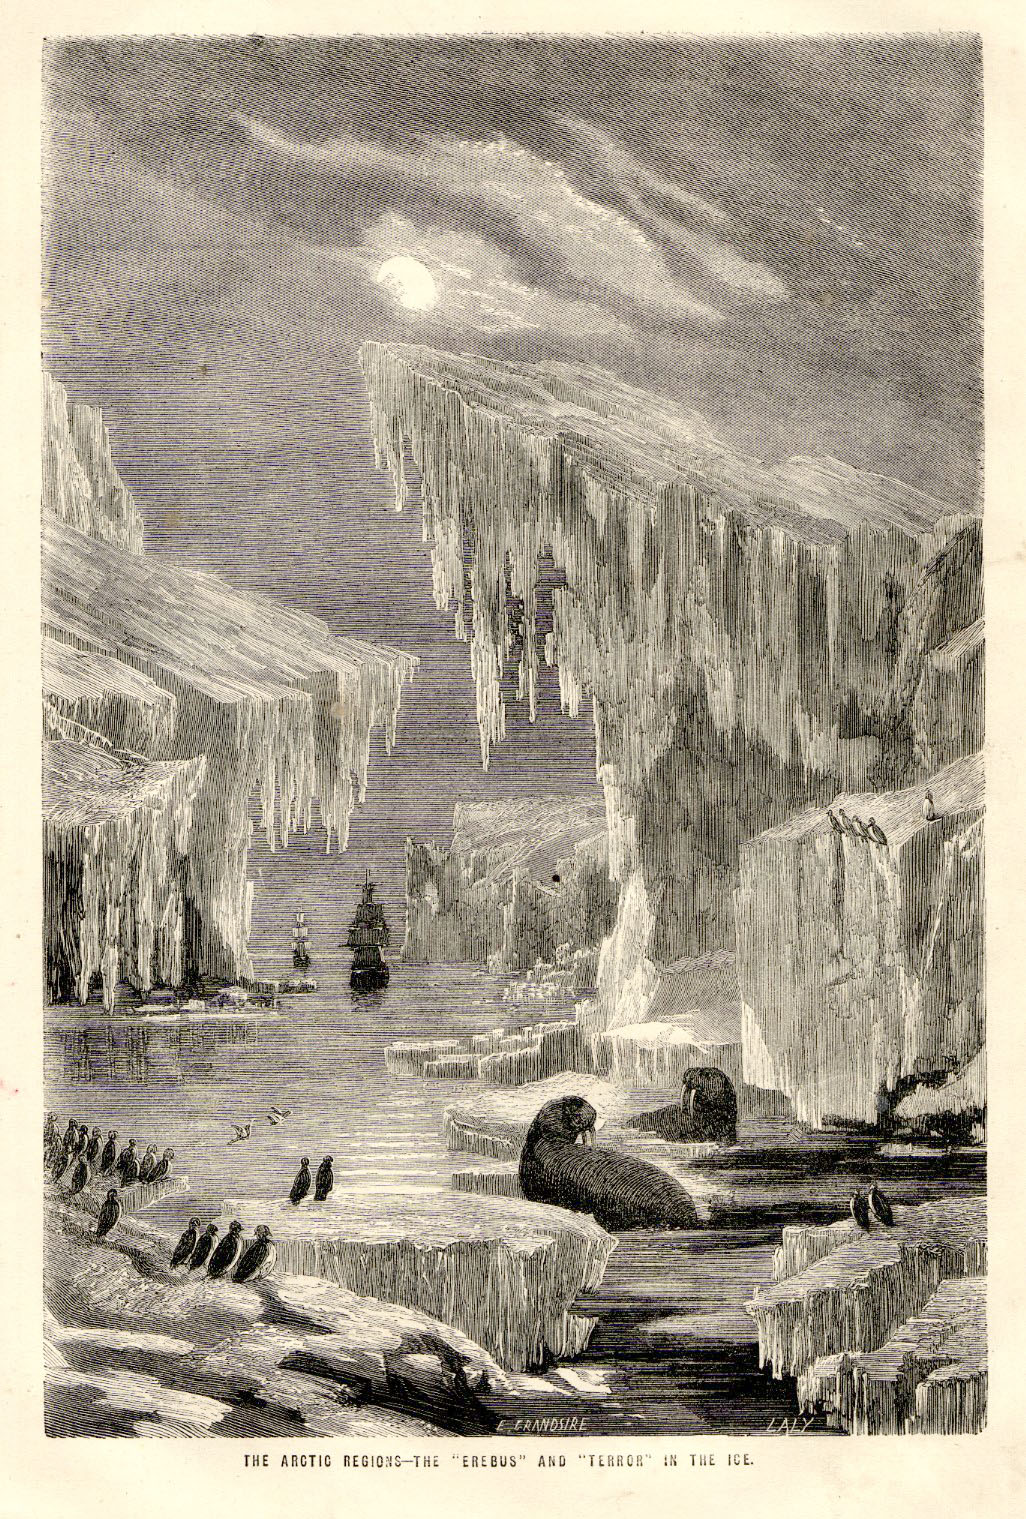 Old illustration portraying the Erebus and Terror in the Arctic